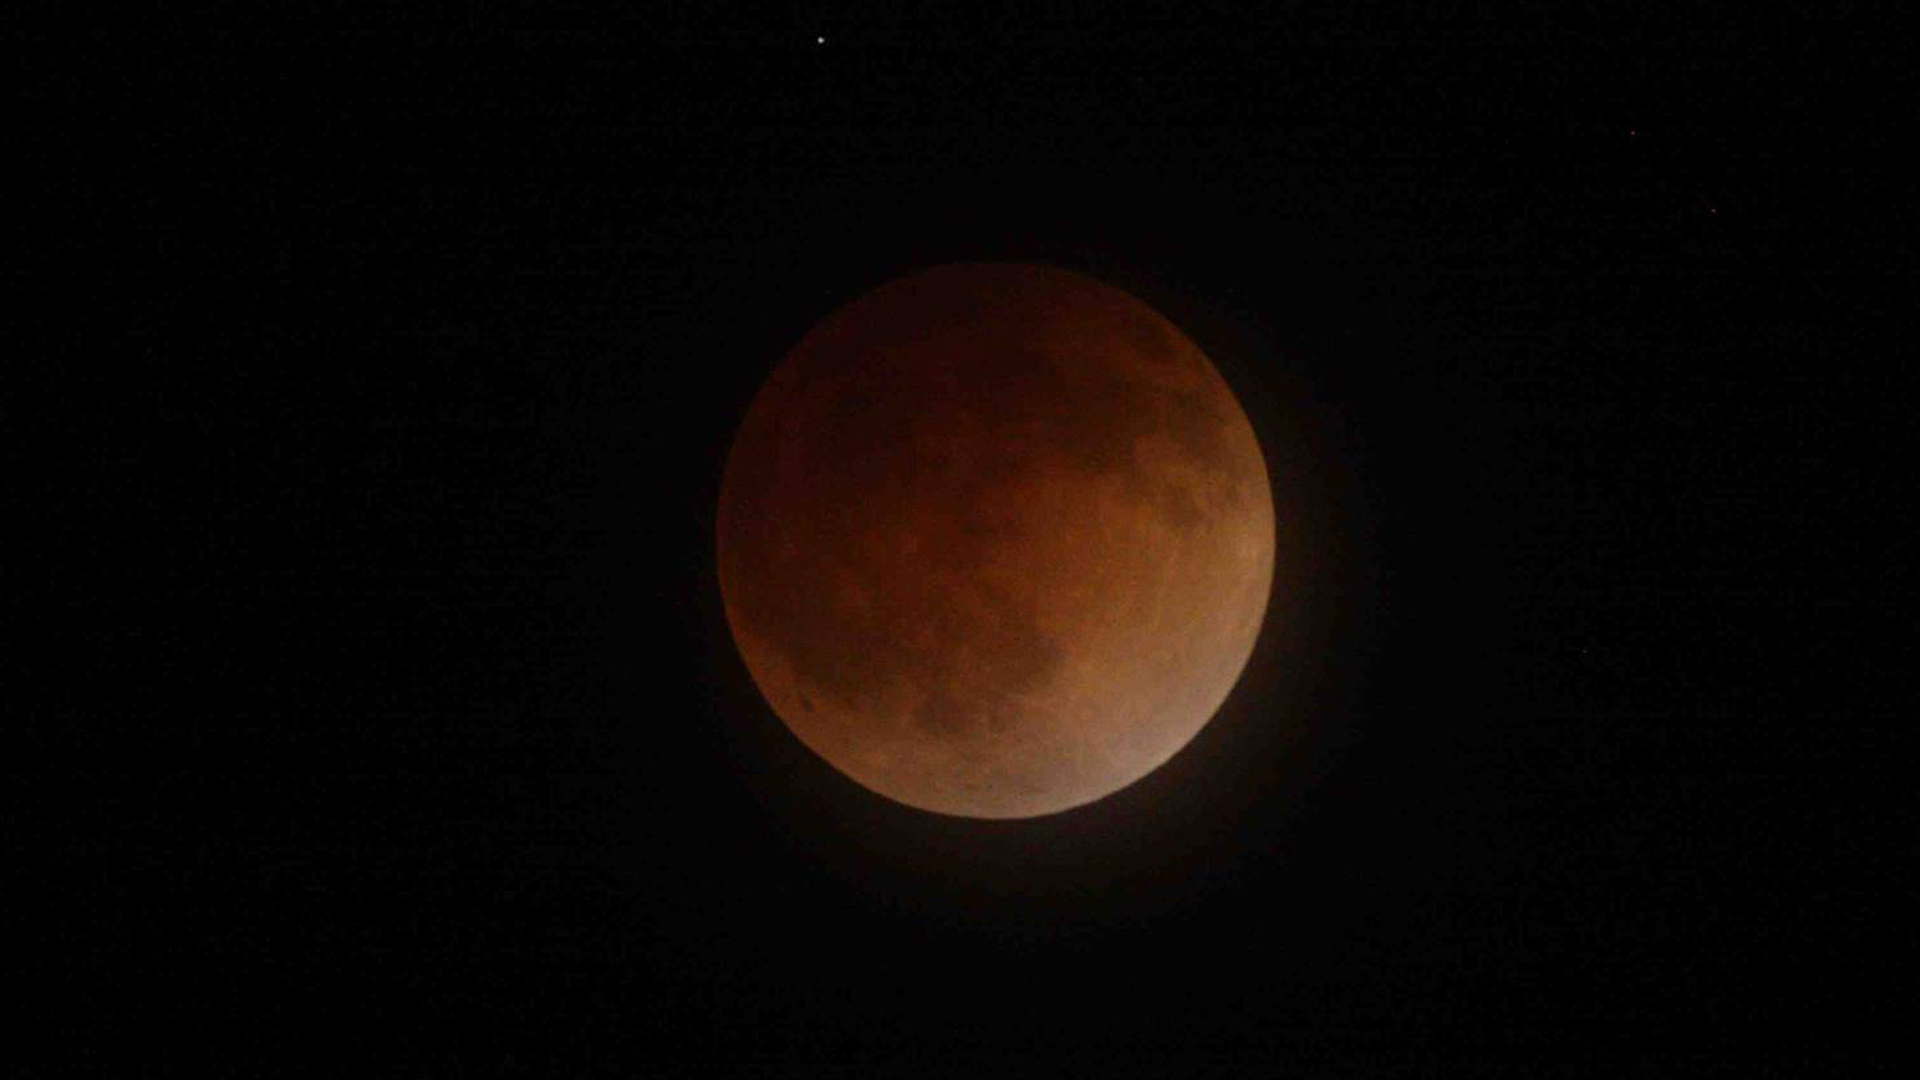 The United States was in a prime orbital position and time of day to view a lunar eclipse on April 15, 2014. (Credit: NASA Ames Research Center/Brian Day)